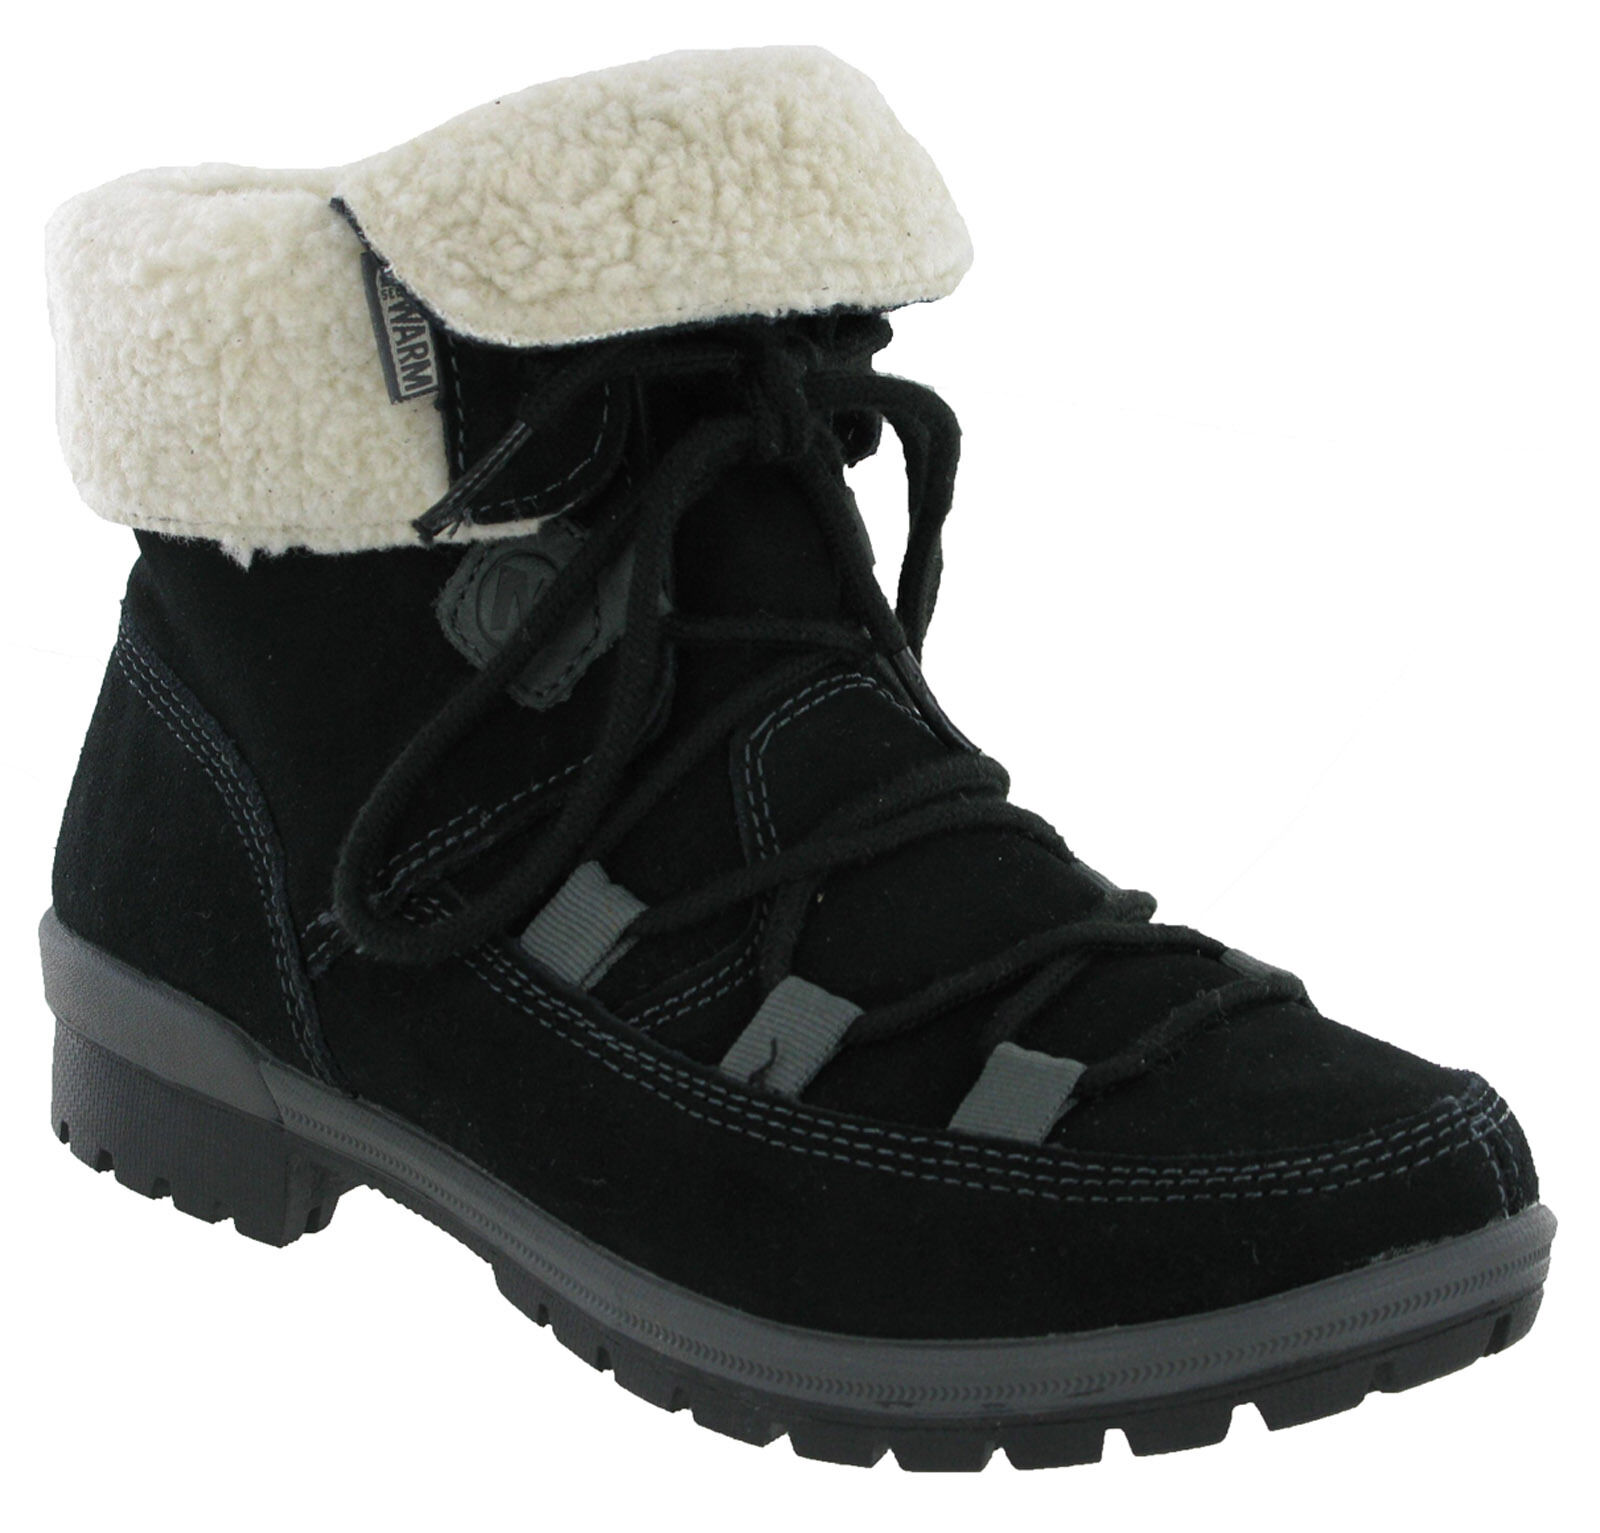 Merrell Emery Lace Warm Fleece Fleece Fleece Lined Womens Ankle Walking Boots Black UK3.5-8.5 6819cd